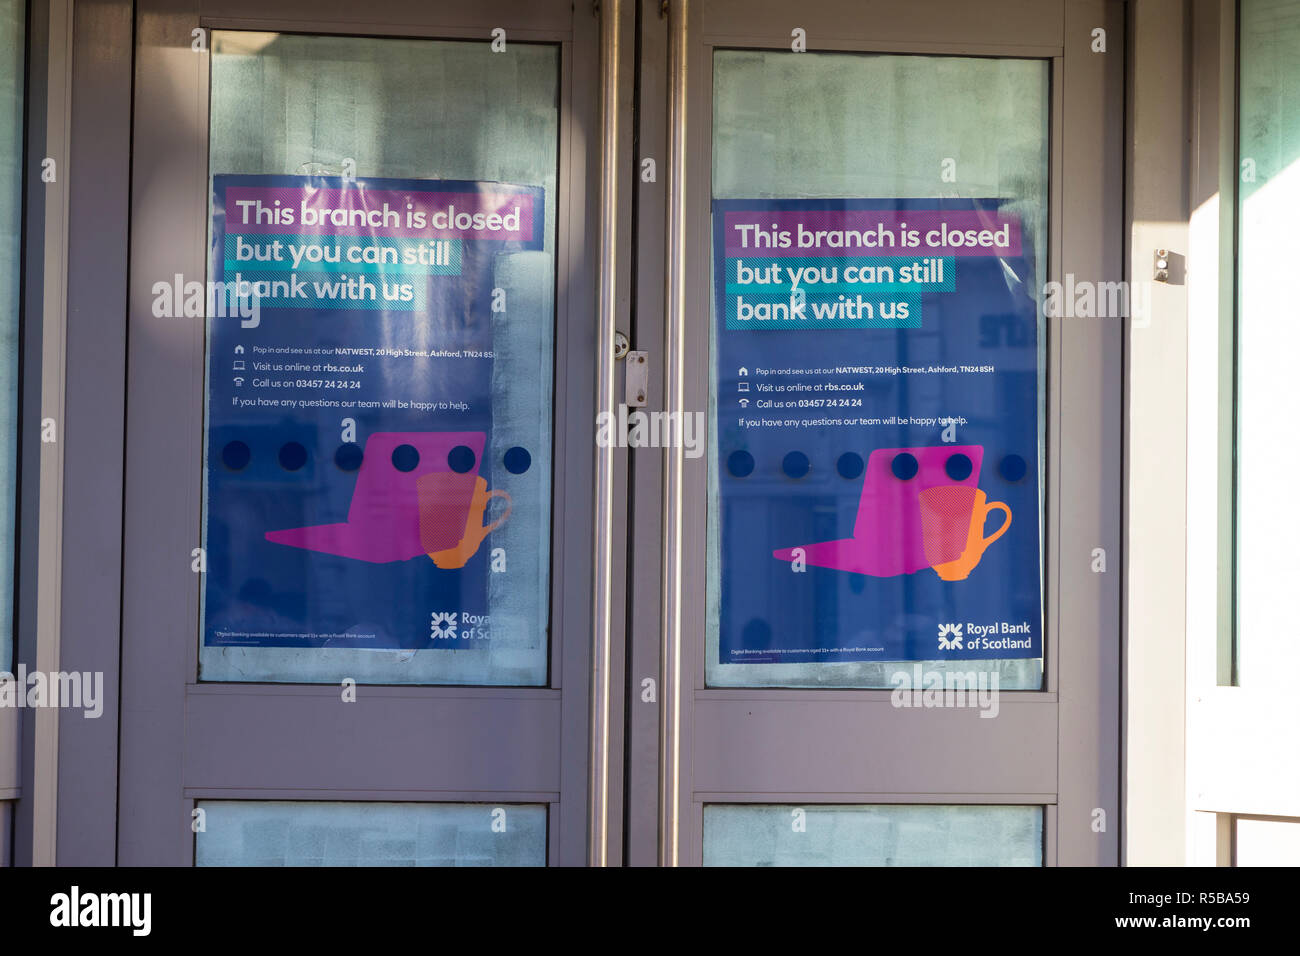 This branch is closed on the doors of a royal bank of scotland rbs branch, ashford, kent, uk - Stock Image